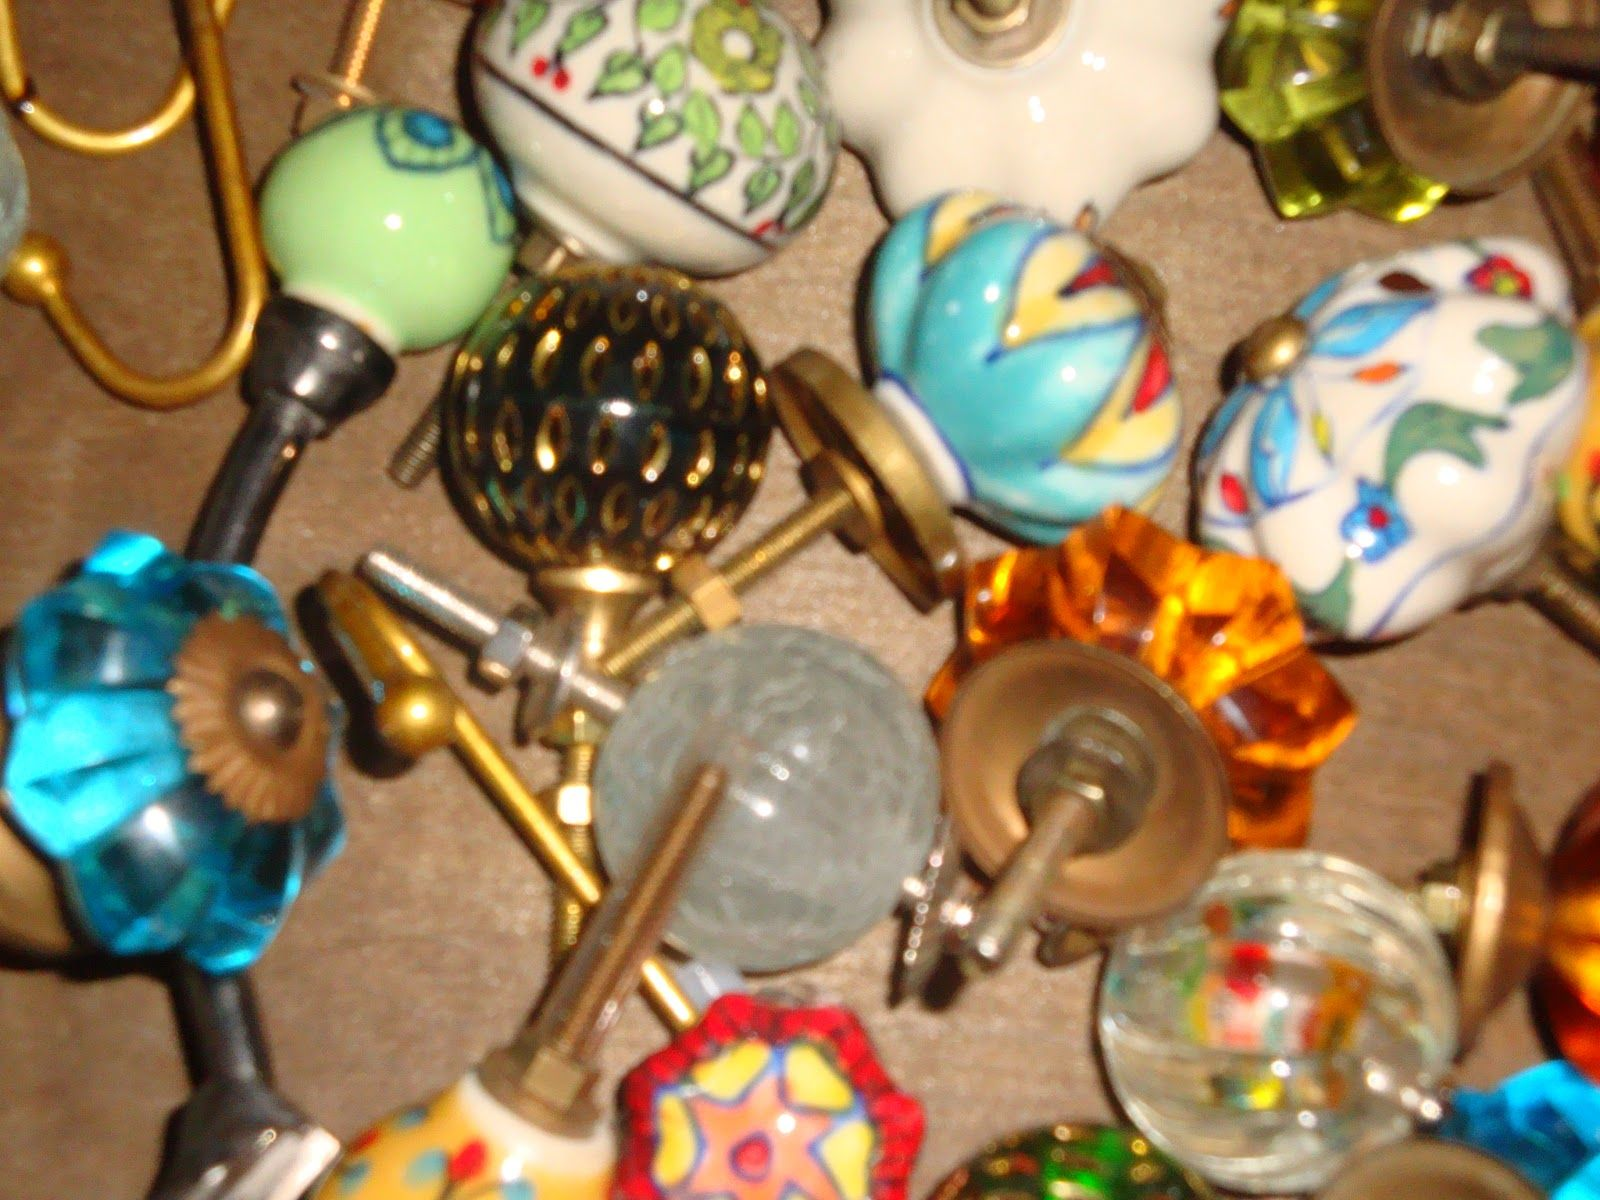 Vintage knobs or x-large beads for closet doors